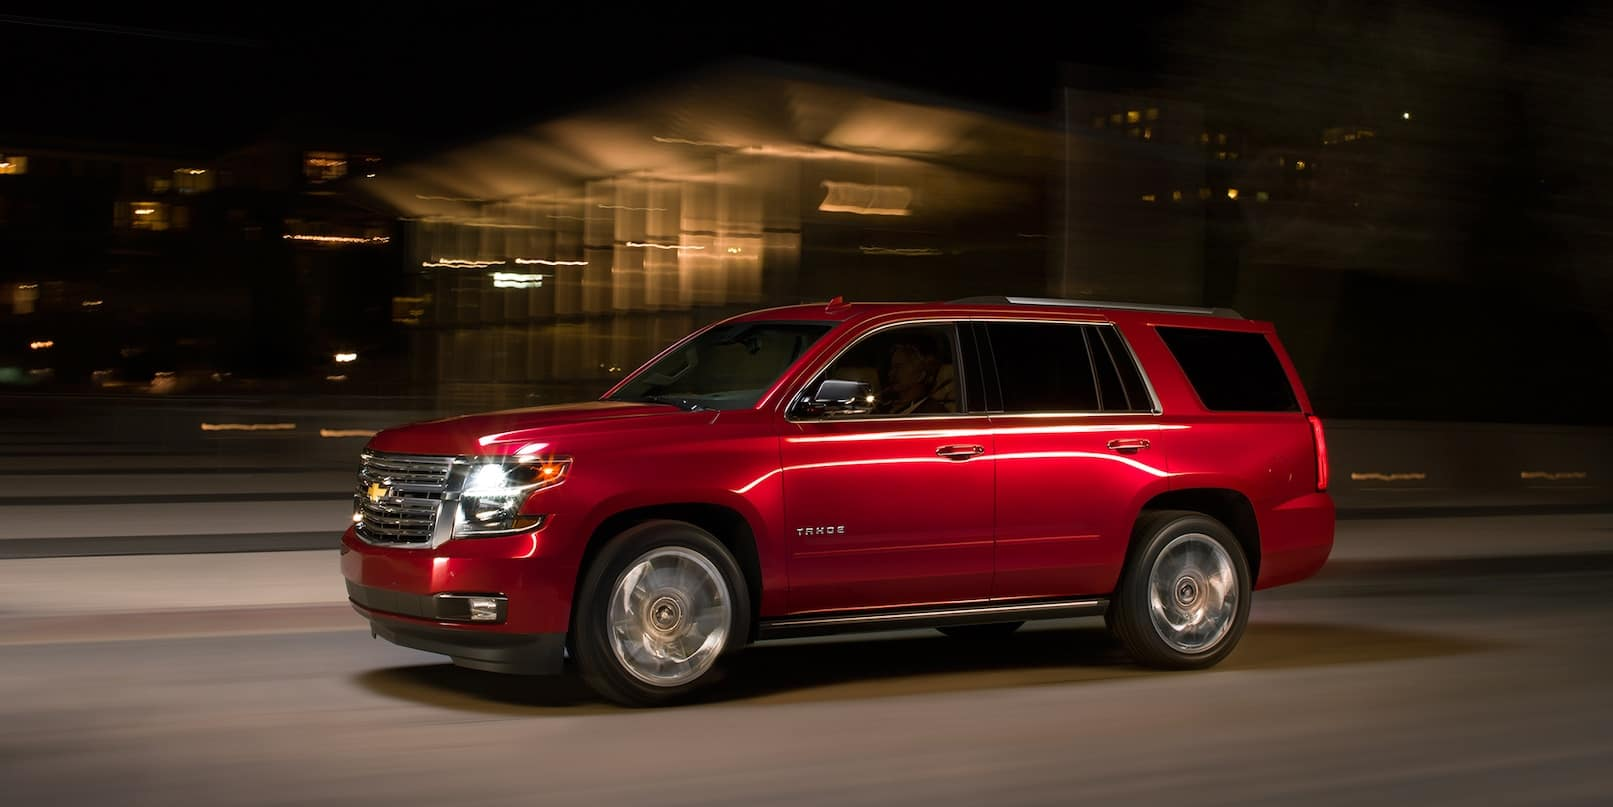 Check Out the Chevy Tahoe!